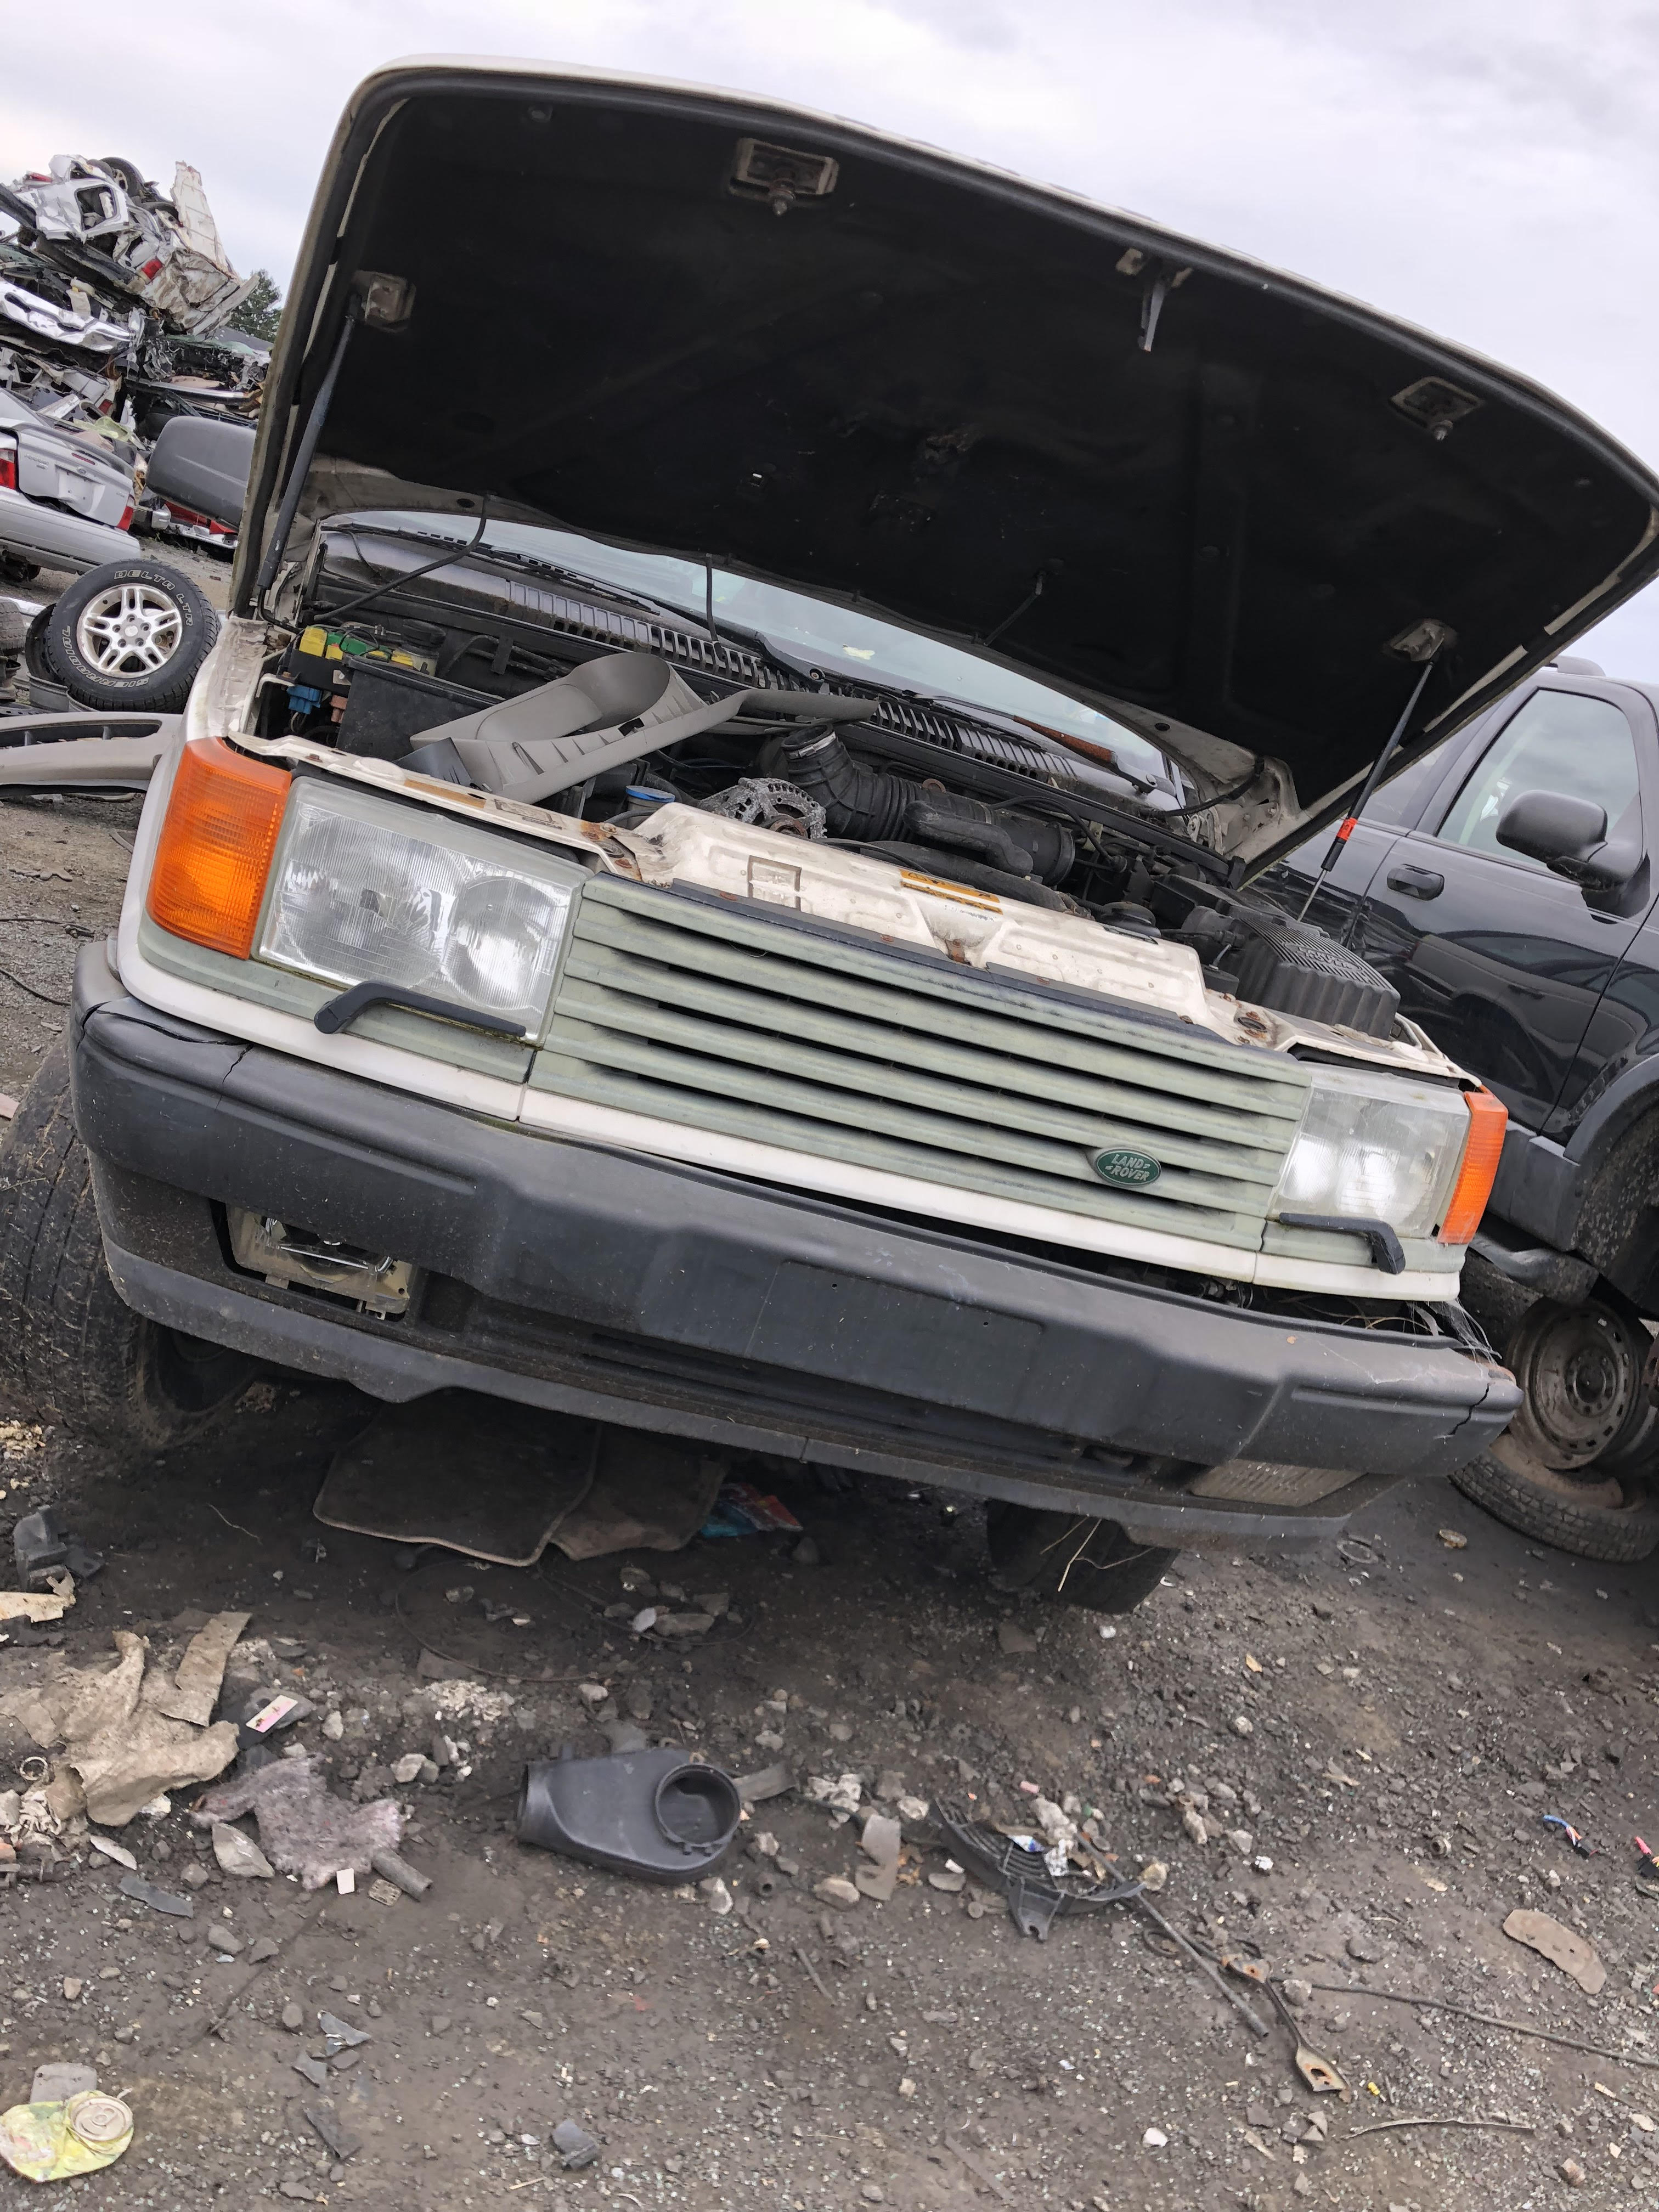 266416d1536629238-poor-old-trashed-p38-junkyard-unnamed-5- Range Rover P Fuse Box Location on tire sizes, front steering system, nieuwe motor, spares south africa, engine problems, mondial wheels, green rear, bleeding procedure, starfish wheels, expedition build,